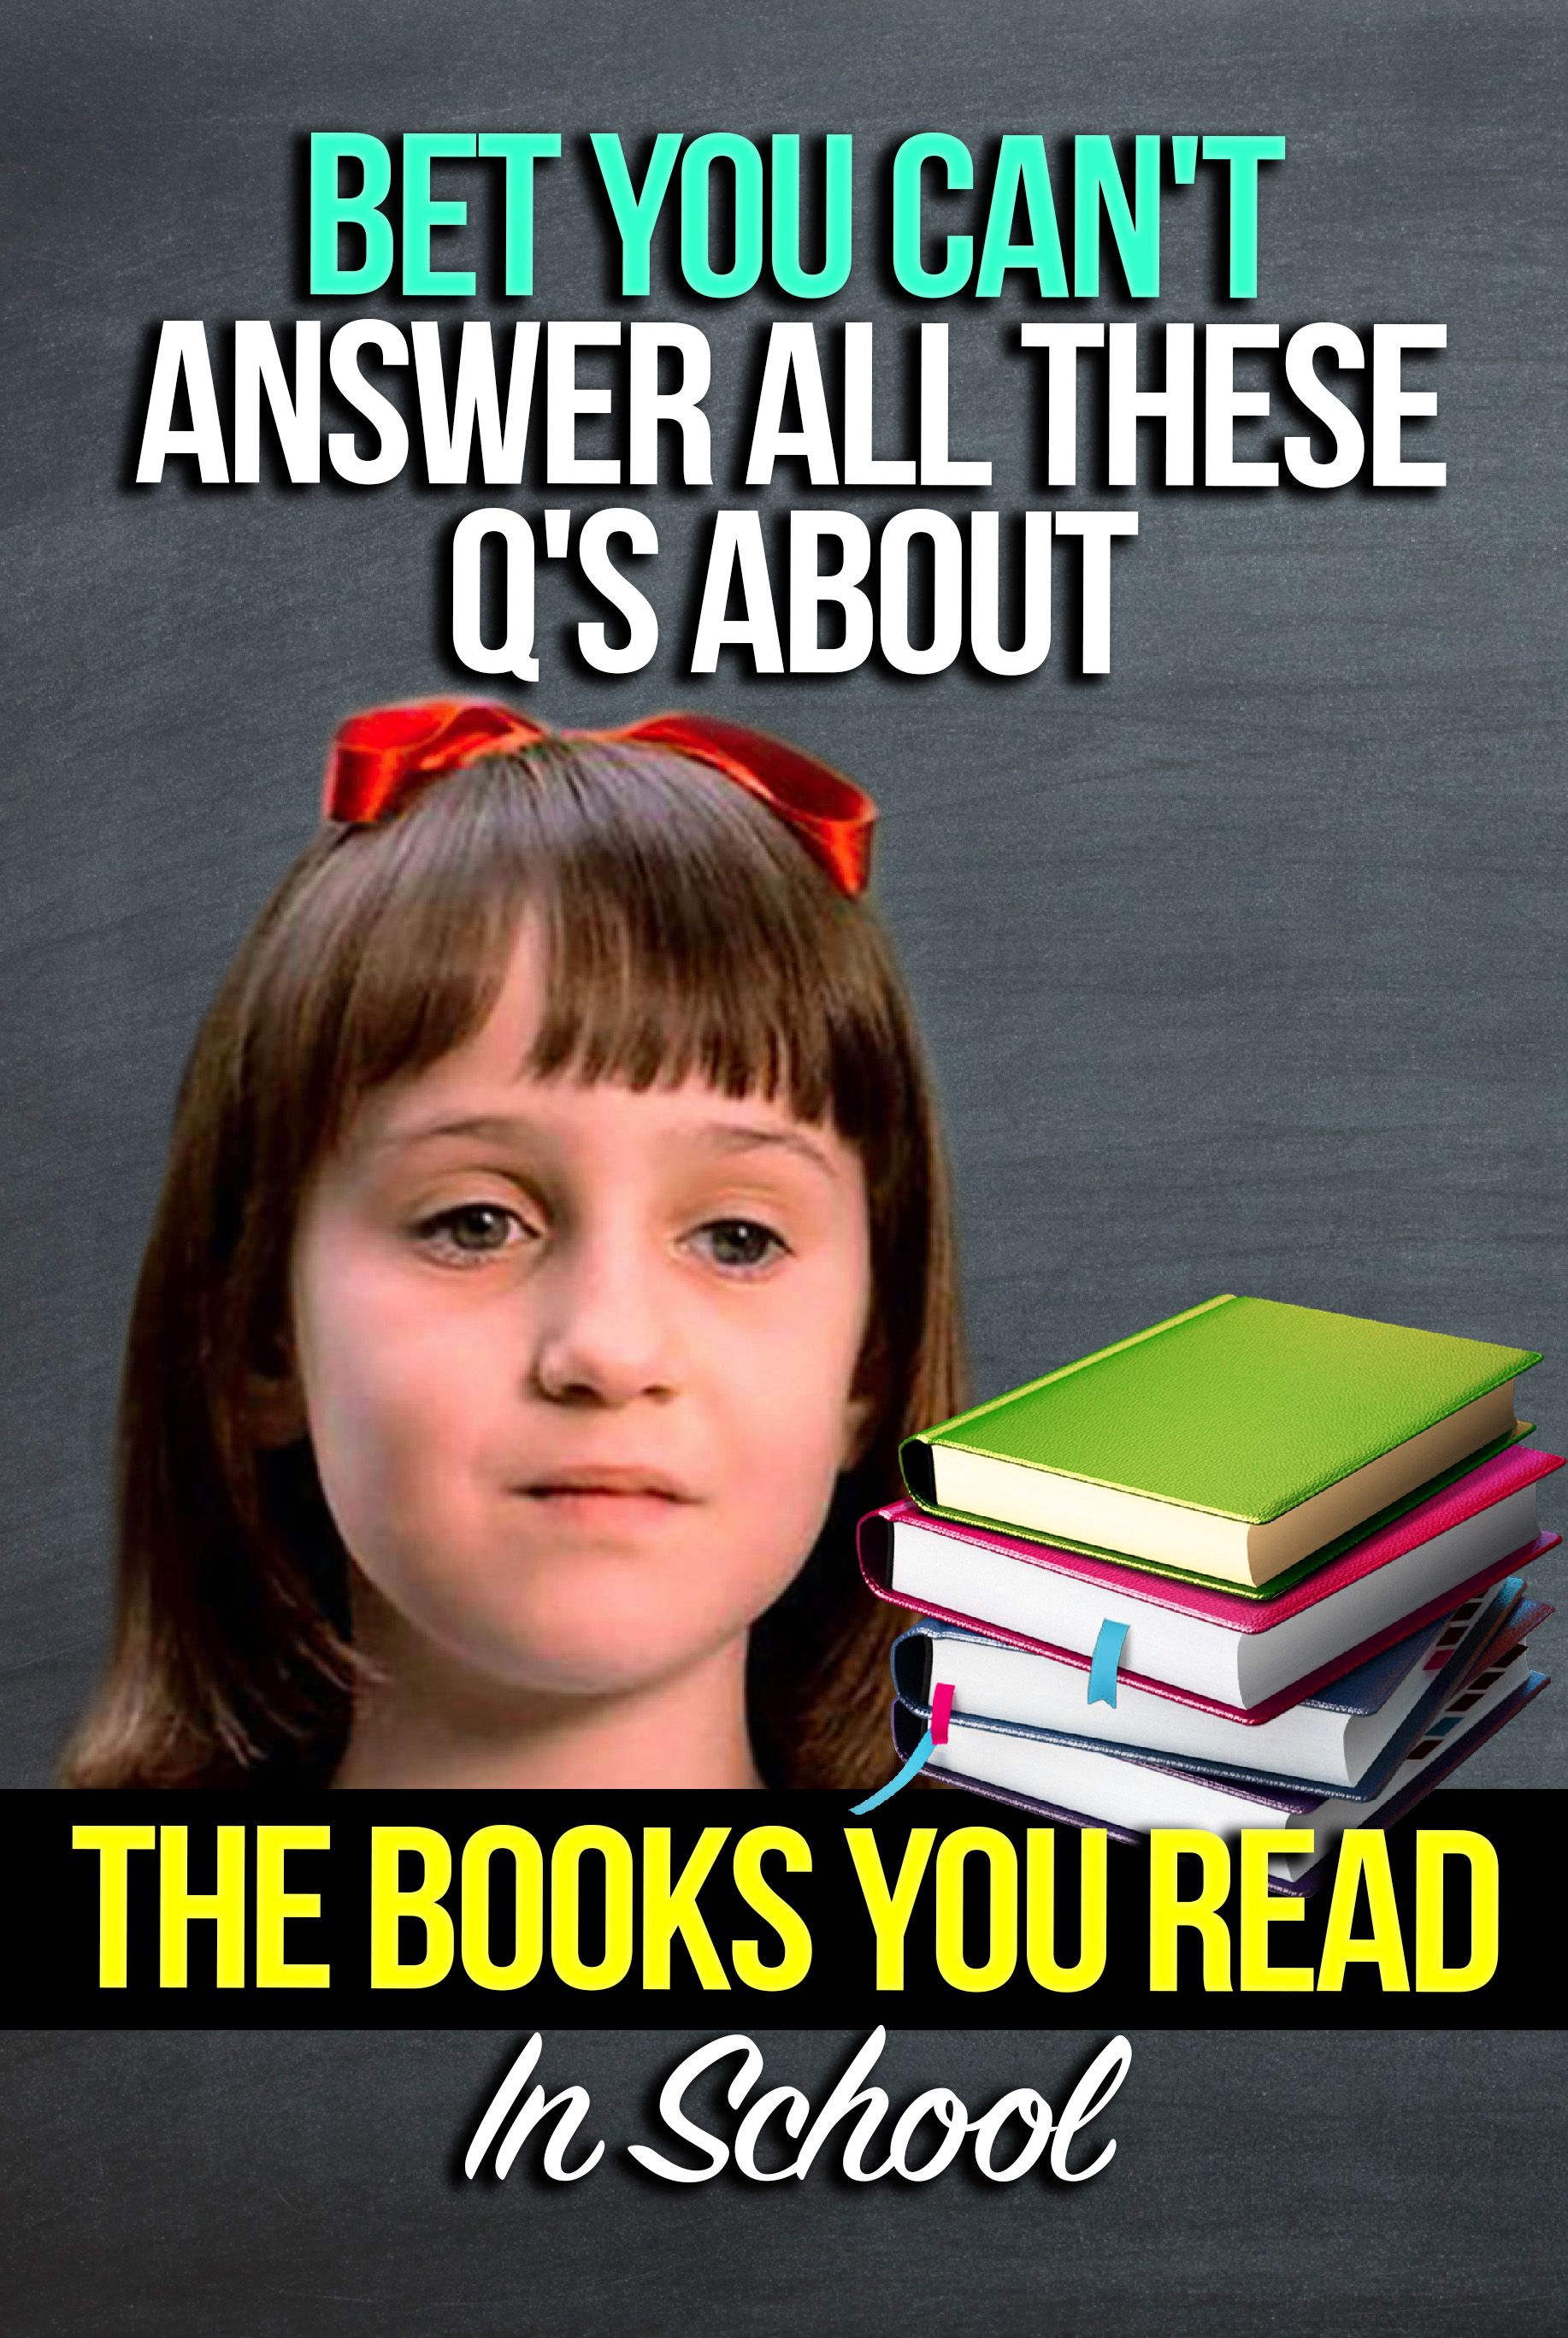 Quiz: Bet You Can't Answer All These Q's About The Books You